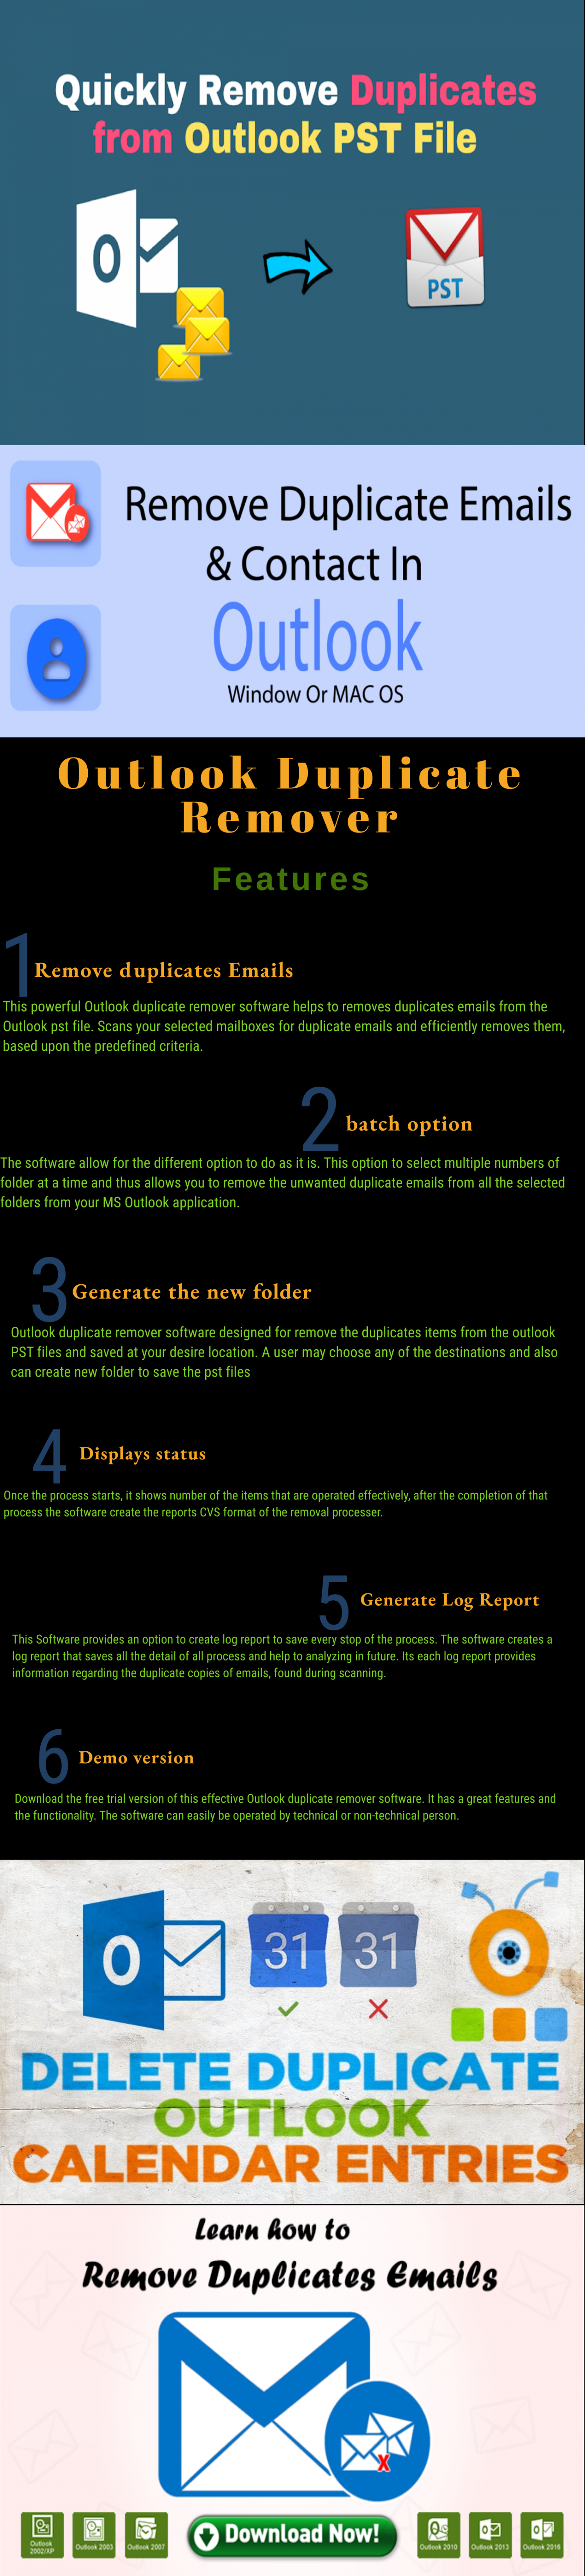 Outlook Duplicate Remover - Remove Duplicate PST files Infographic